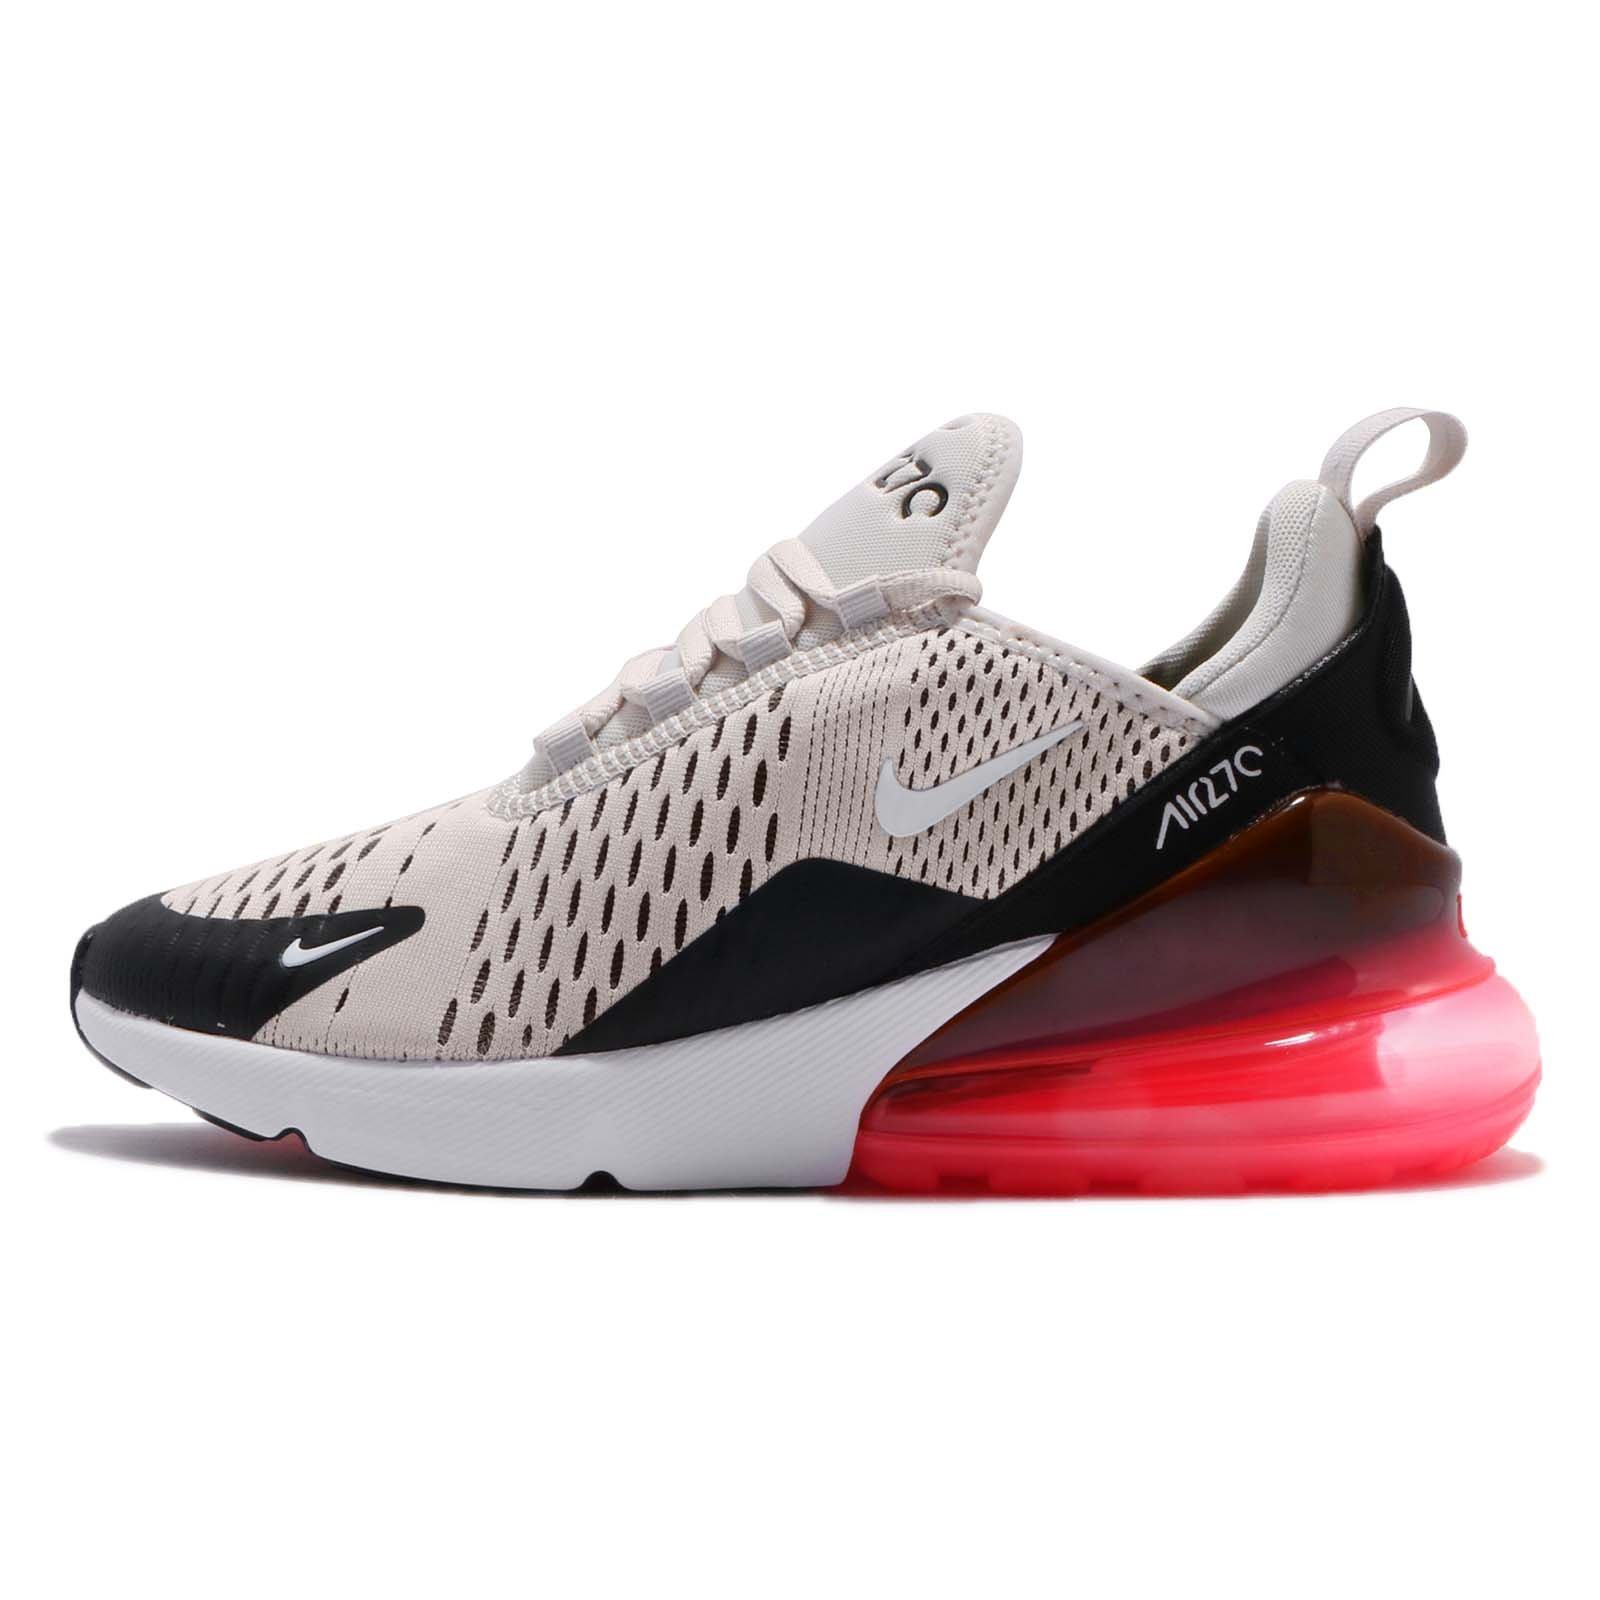 829e78ae8c Galleon - NIKE Air Max 270 (gs) Big Kids 943345-002 Size 4